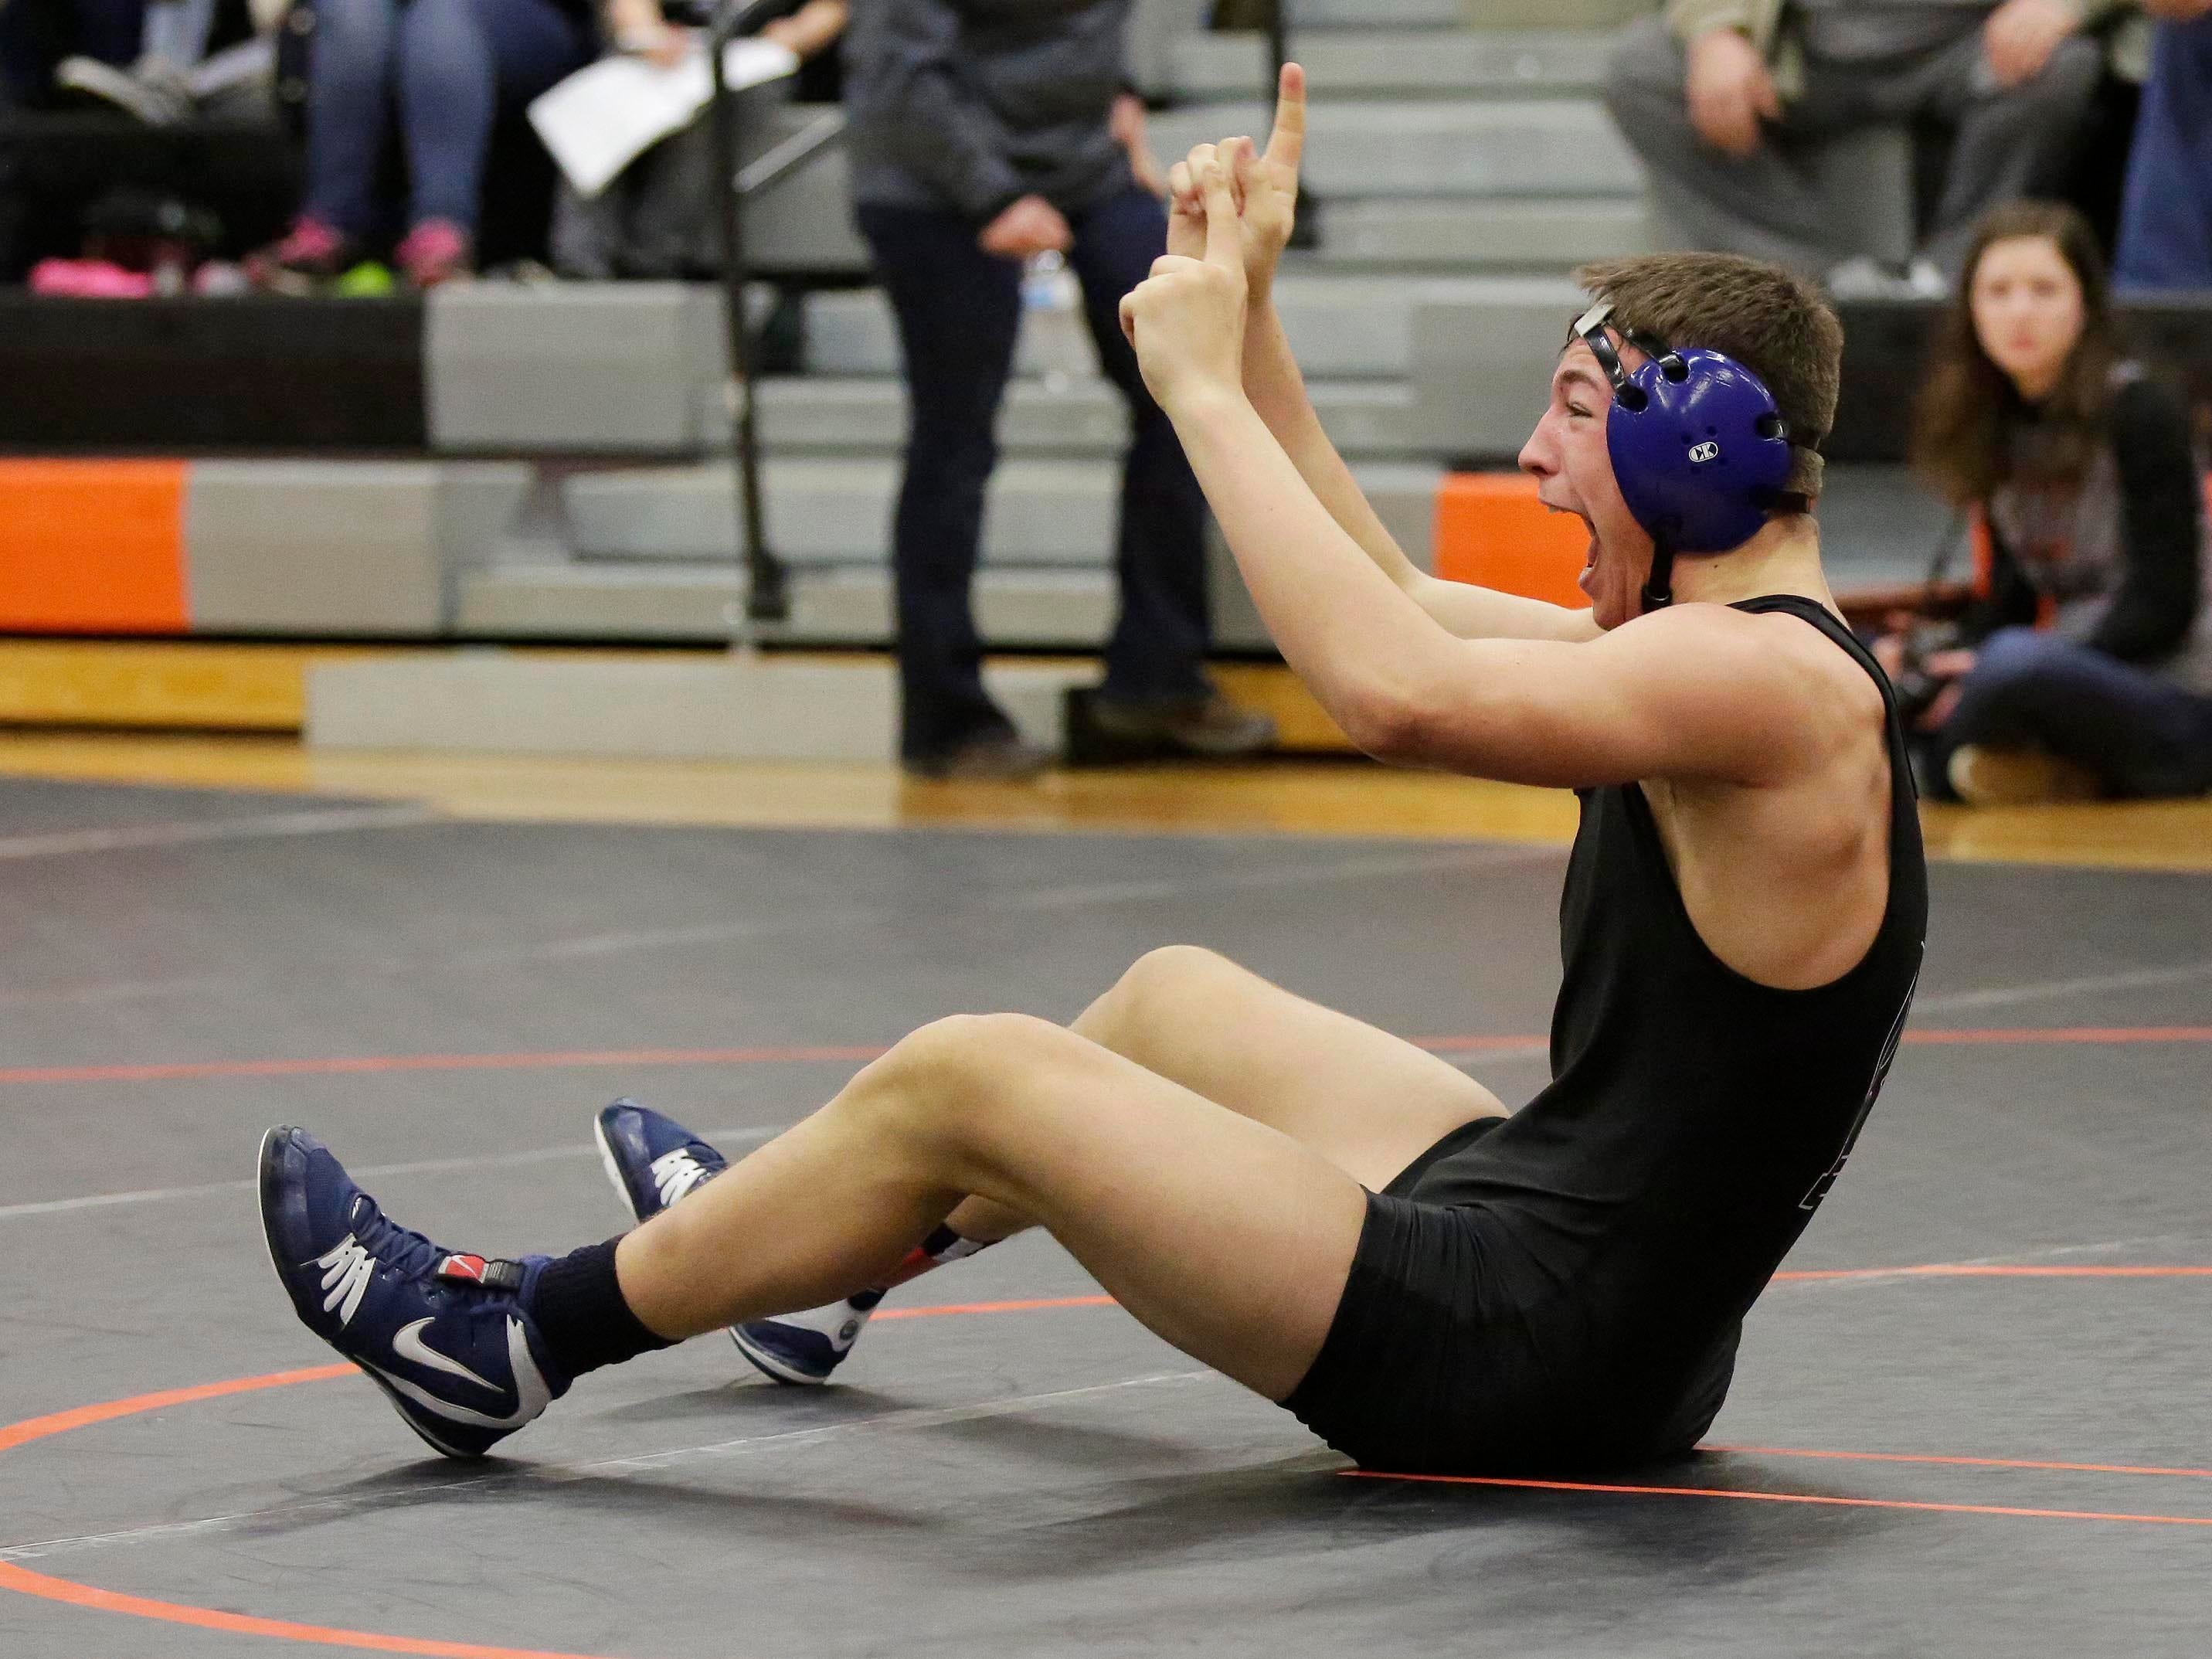 Random Lake's Sam Schwabe points skyward following his win over Cedar Grove-Belgium's Sawyer DeRuyter in a 170-pound match at the WIAA Div. 3 Wrestling Regional, Saturday, February 9, 2019, in Oakfield, Wis. 